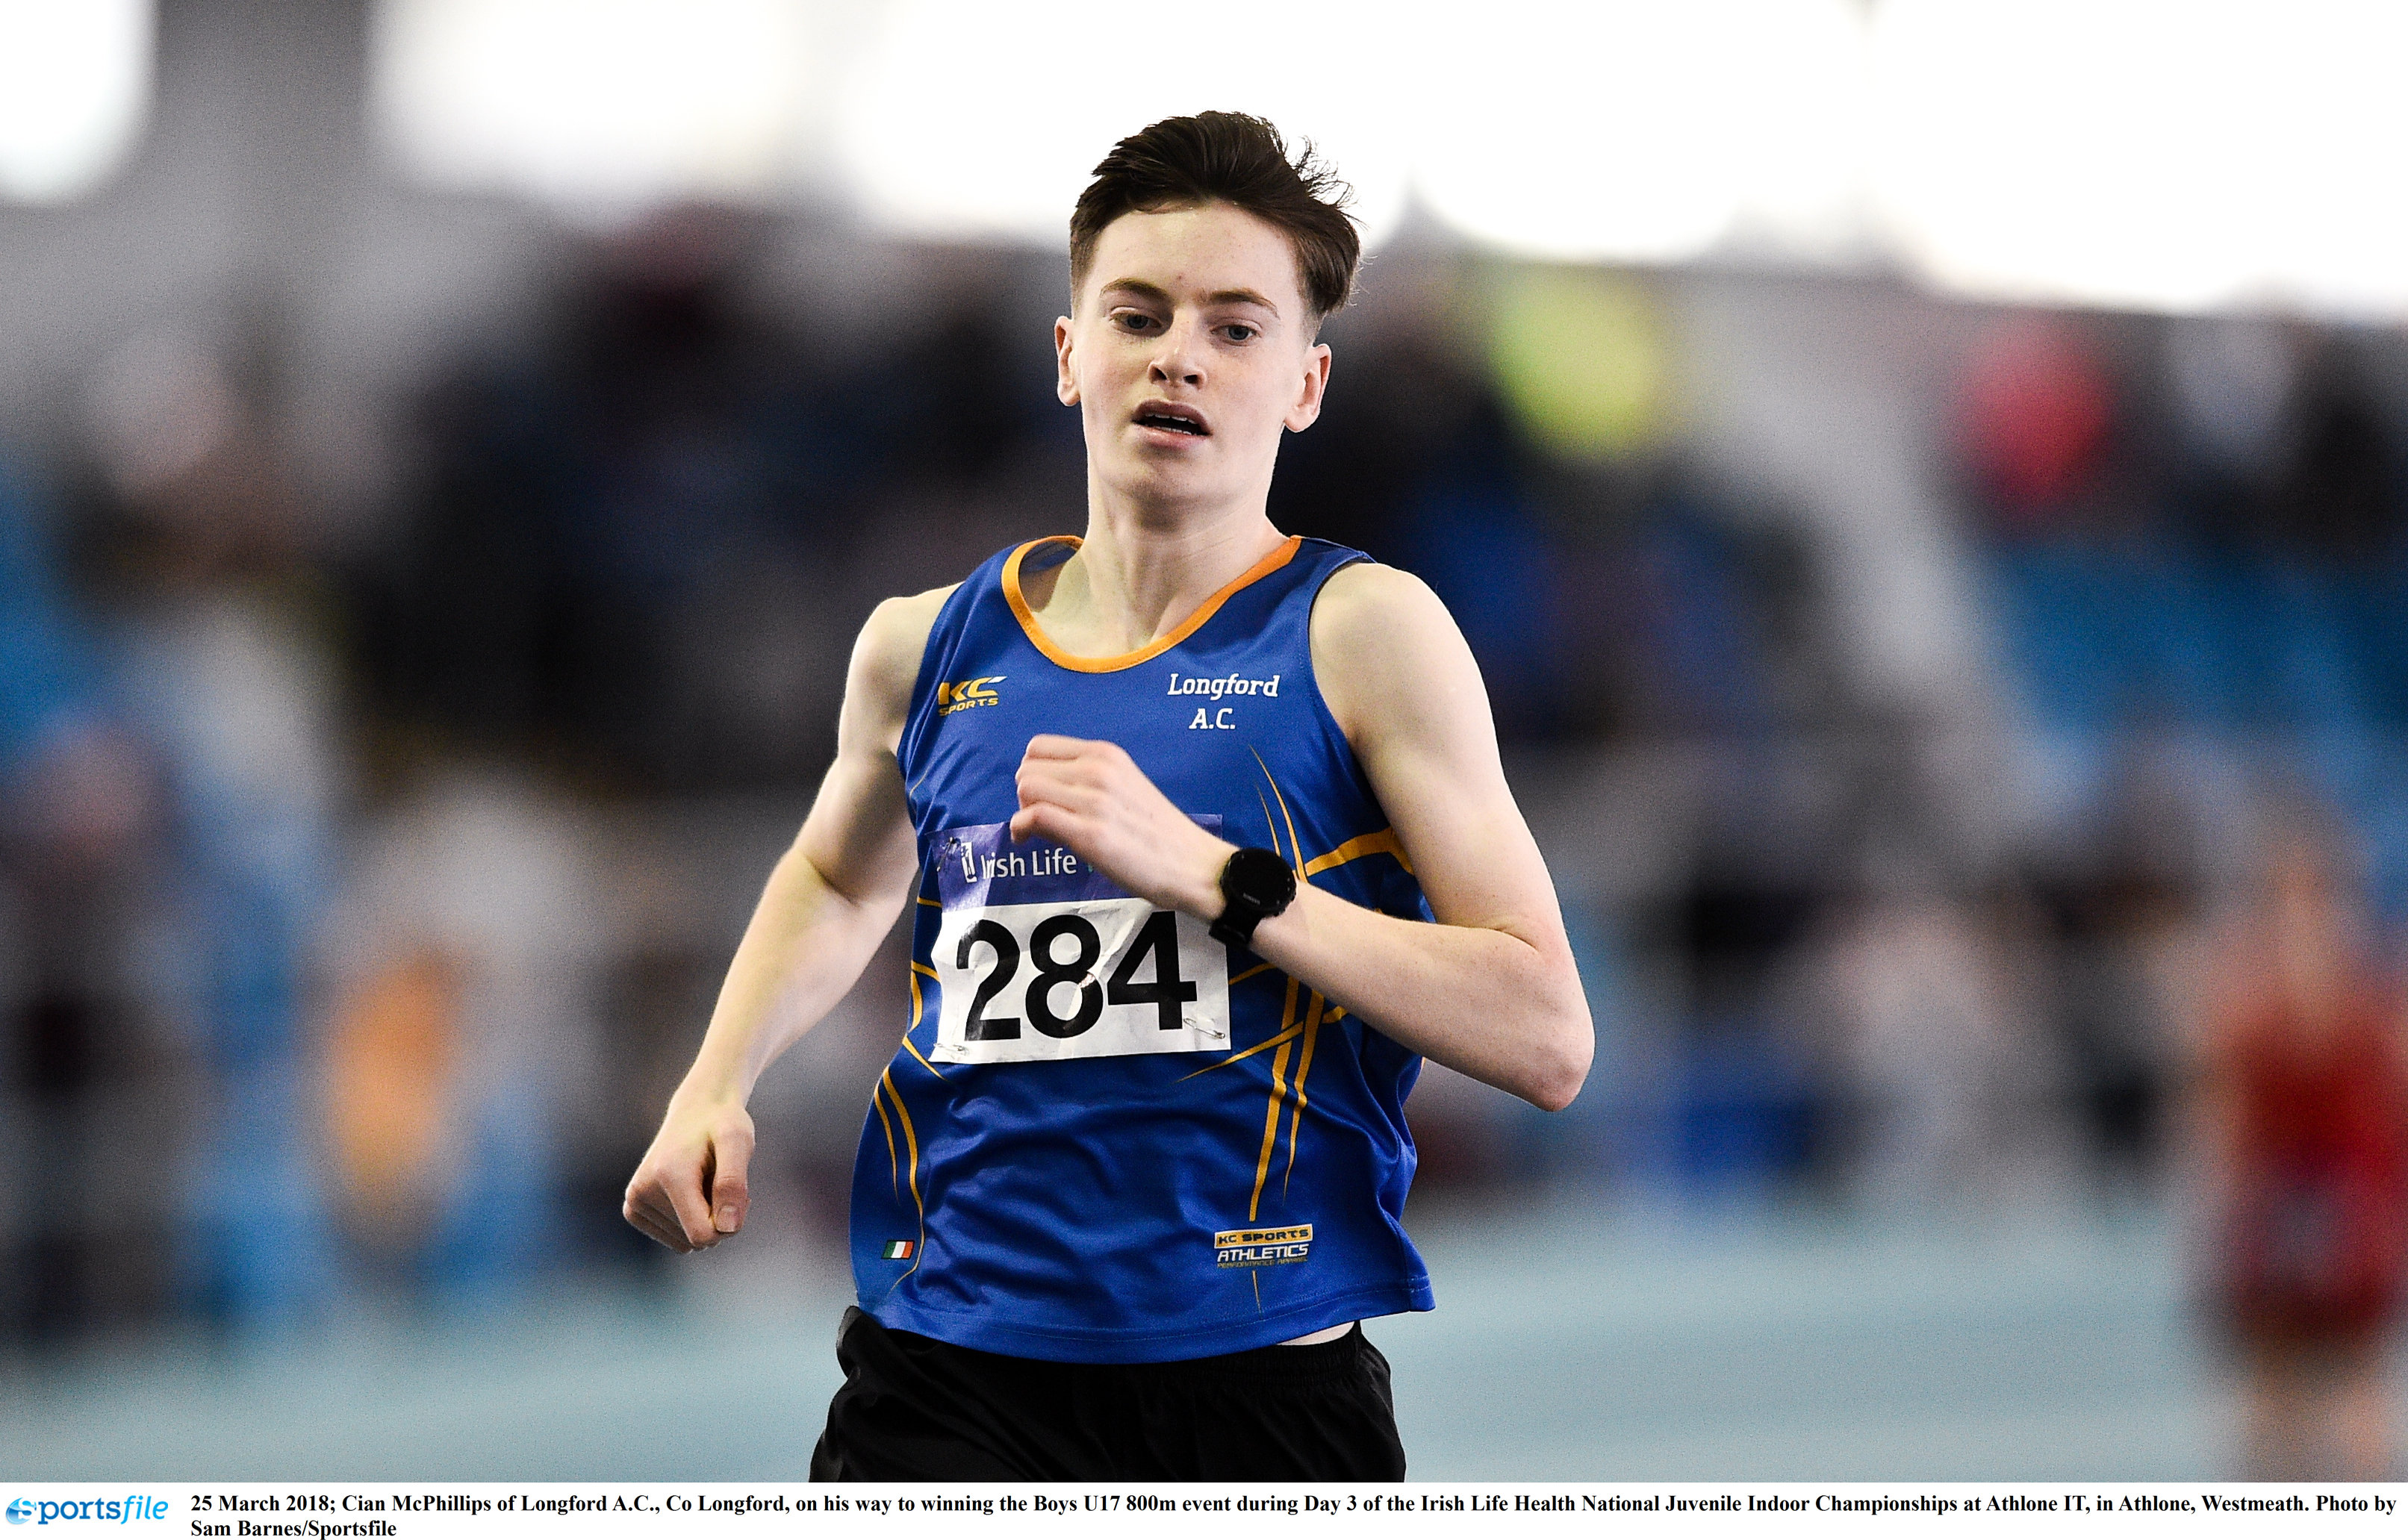 Cian McPhillips, the new Irish Junior 1500m Indoor record holder